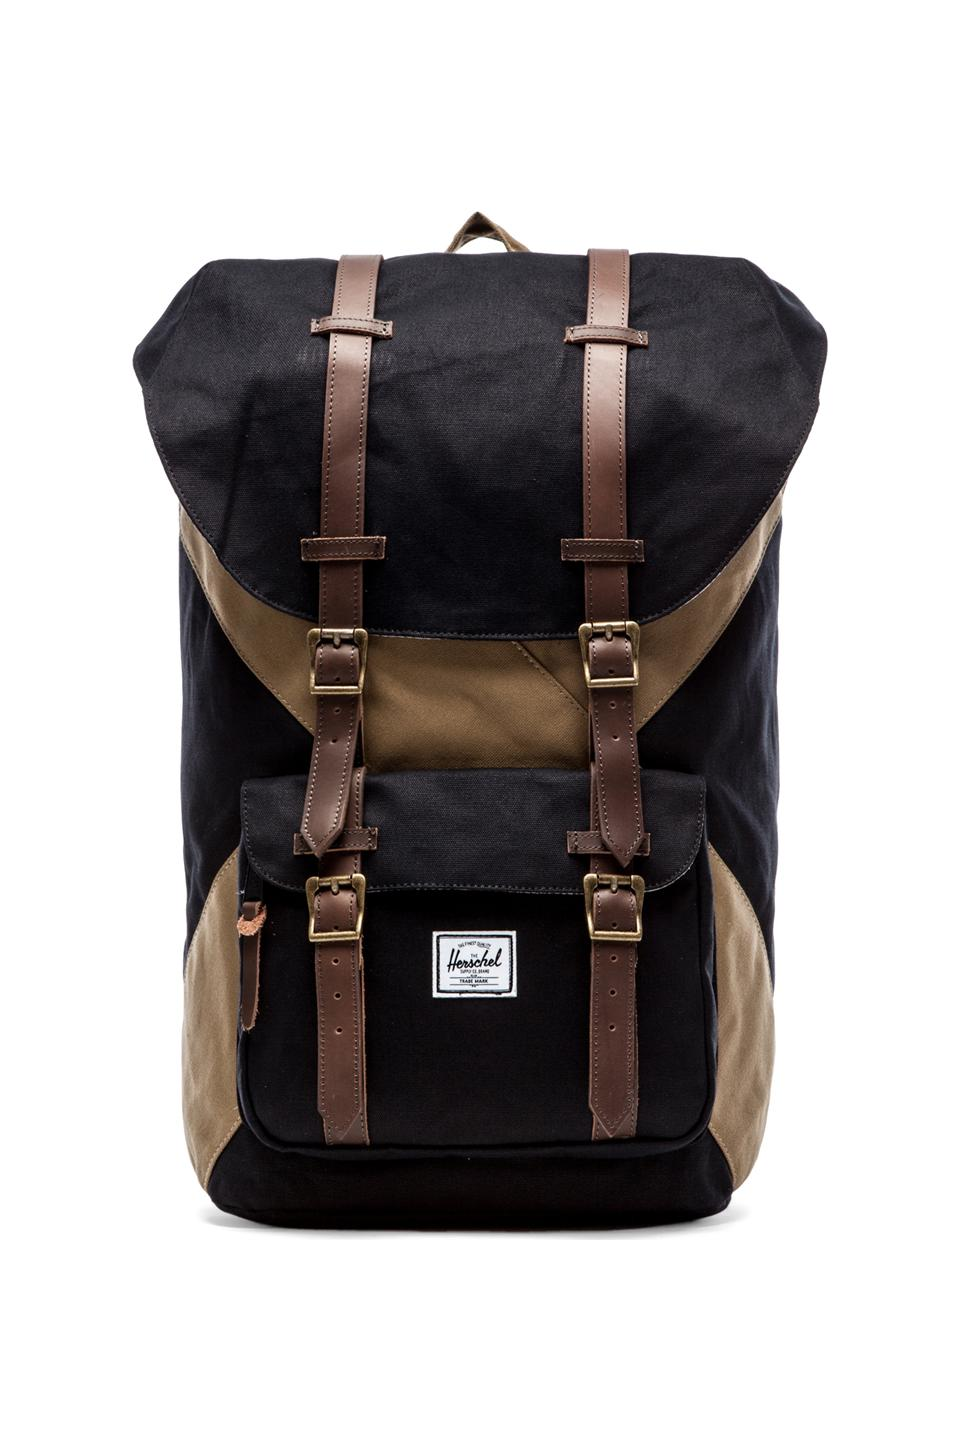 Herschel Supply Co. Studio Collection Little America Backpack in Black & Sand